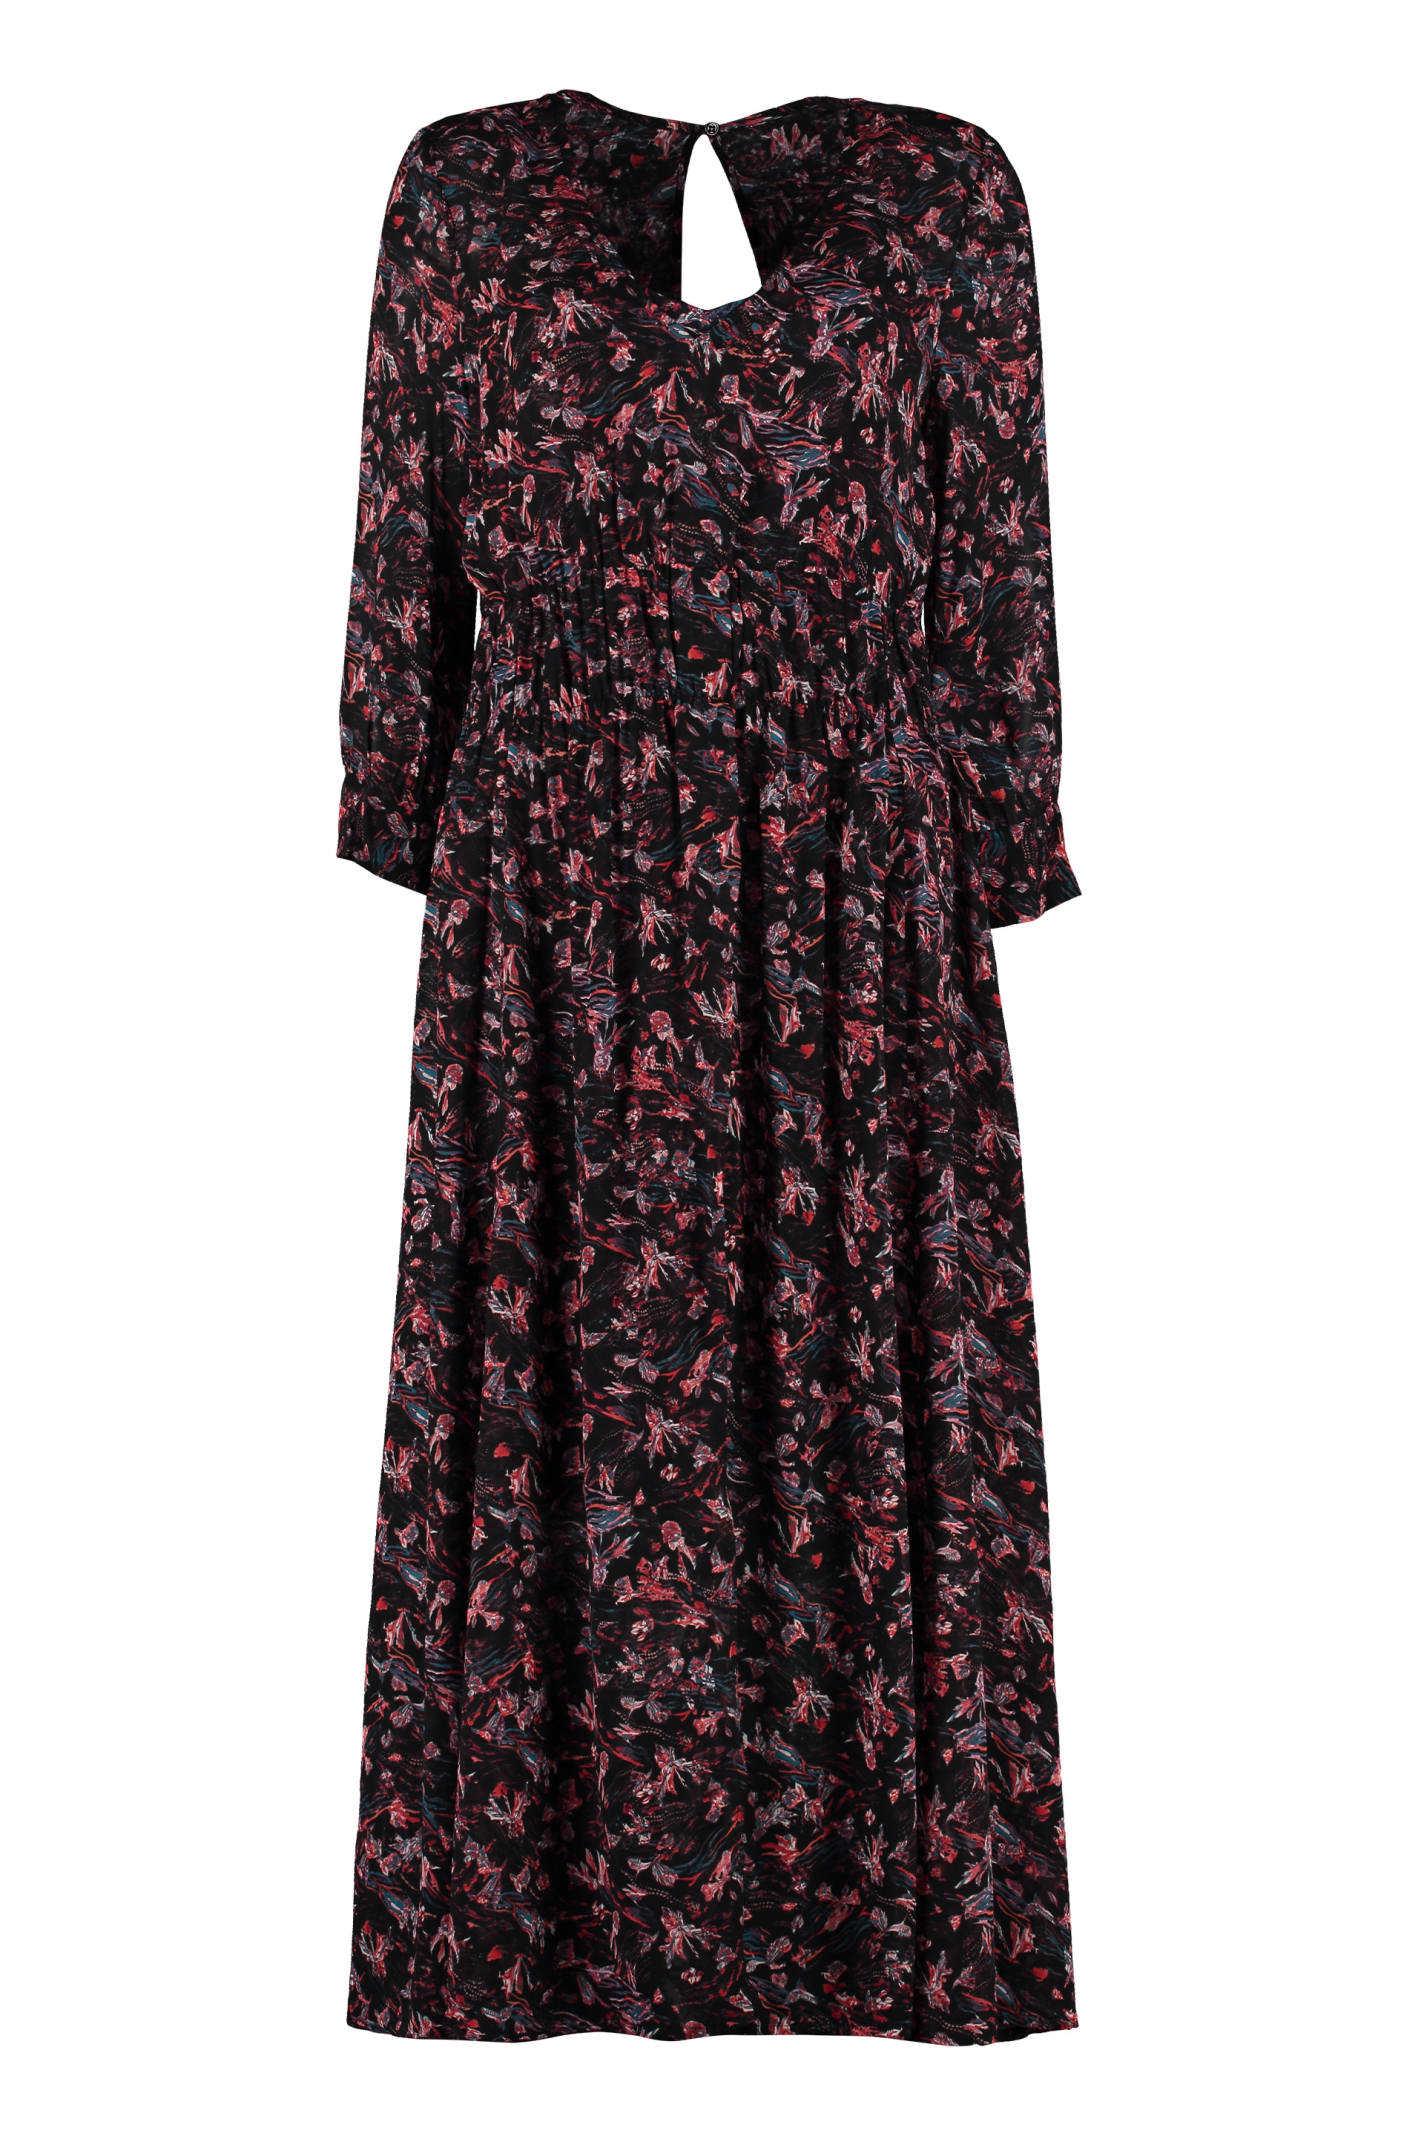 IRO Sirthy Floral Print Crepe Dress